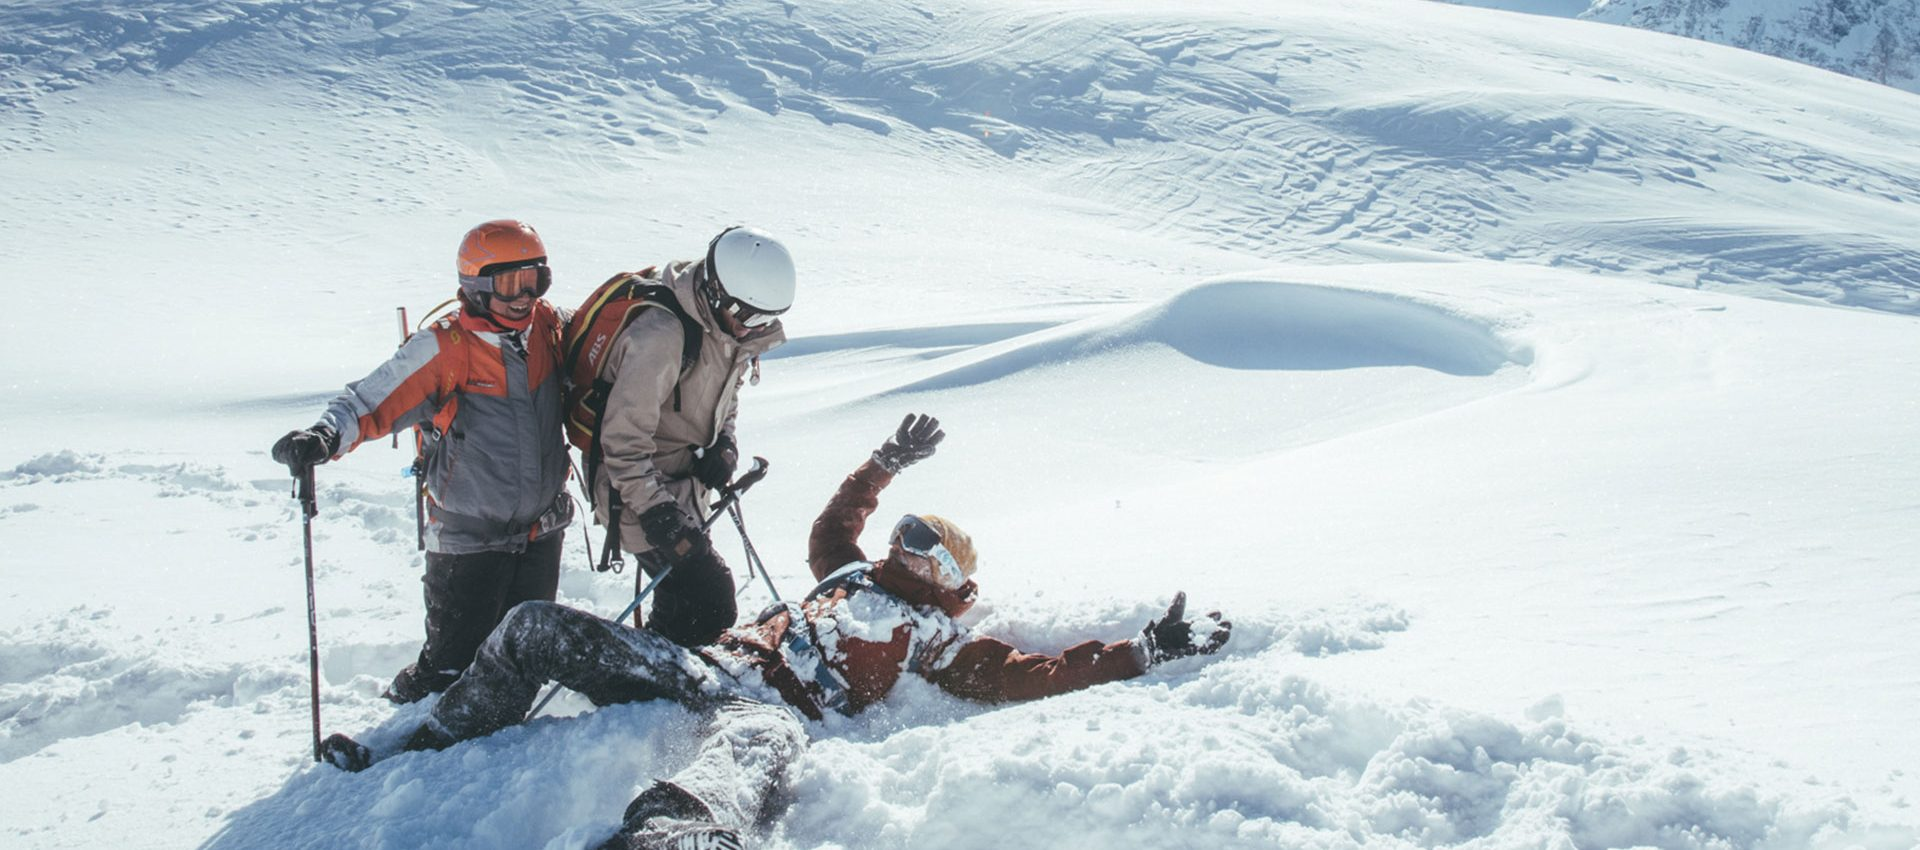 He's been found! The joy of practical avalanche & safety training.